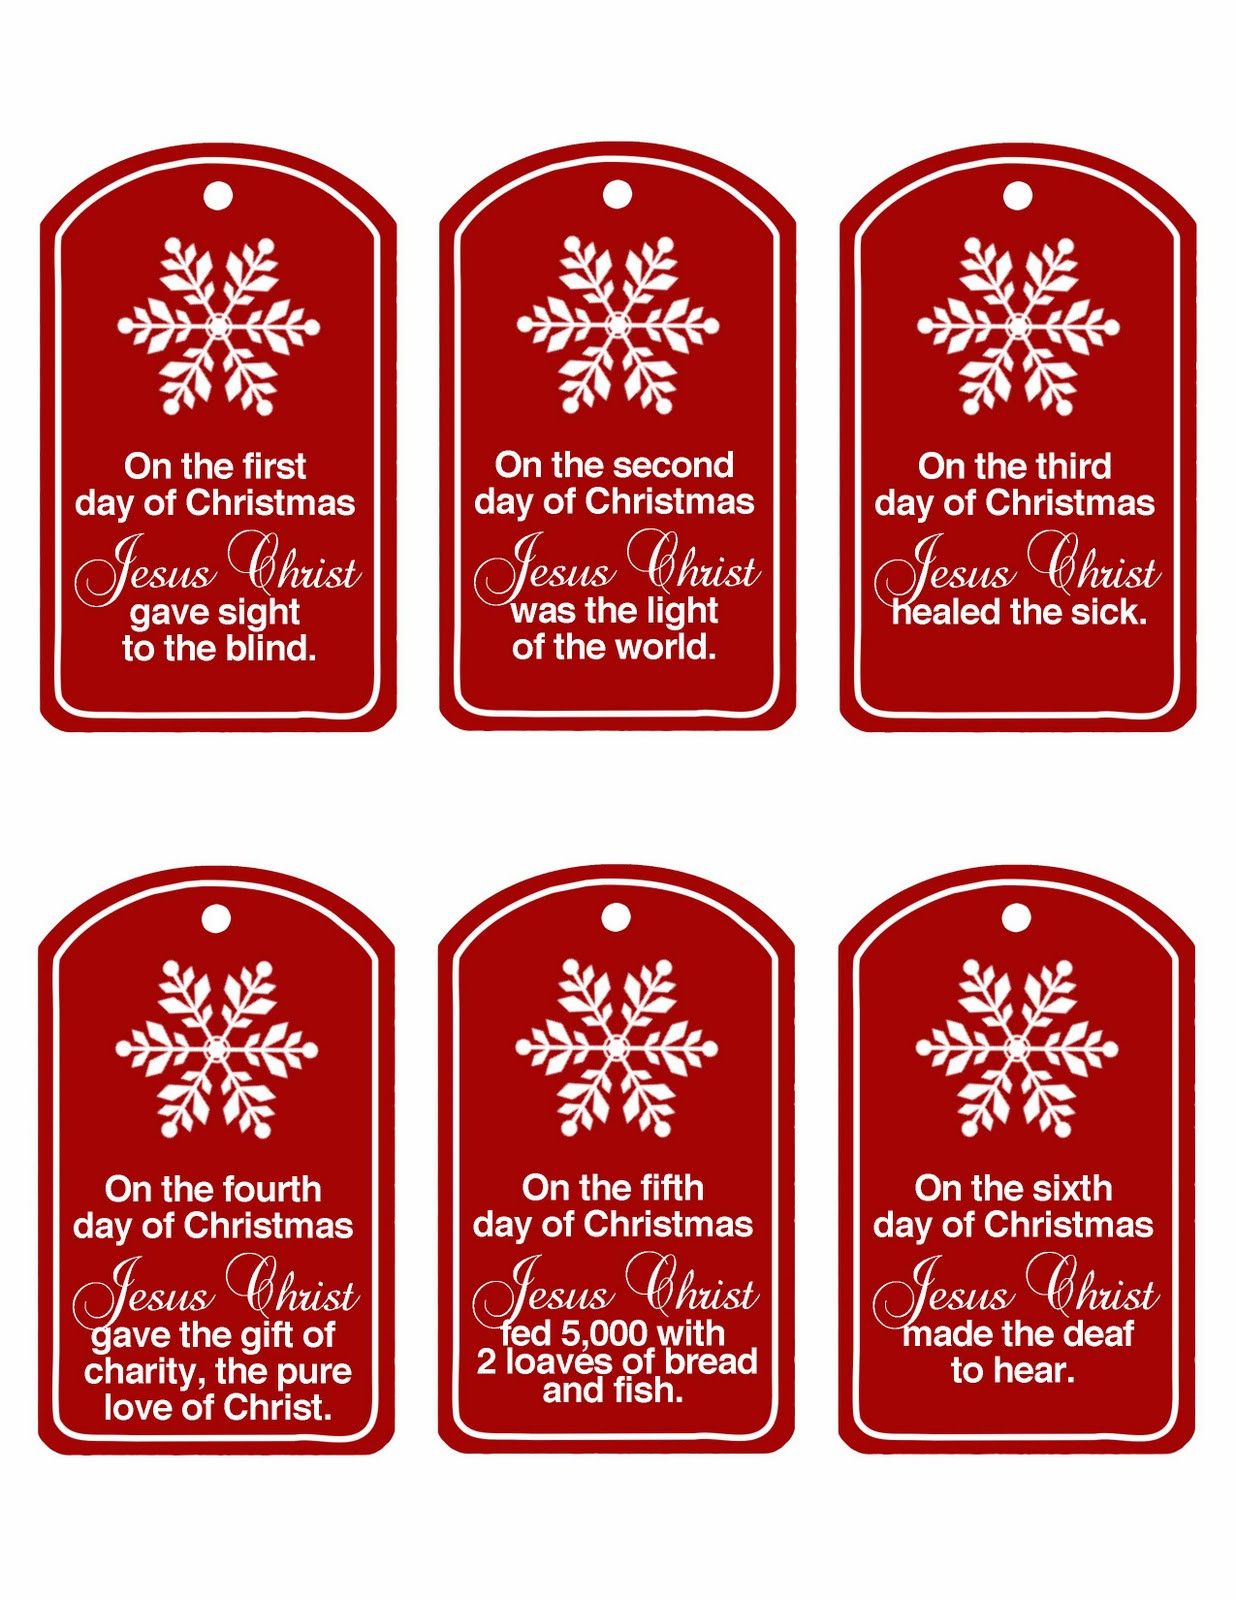 12 Days Of Christmas Gift Ideas For Friends  Family Home Fun Christ Centered 12 Days of Christmas